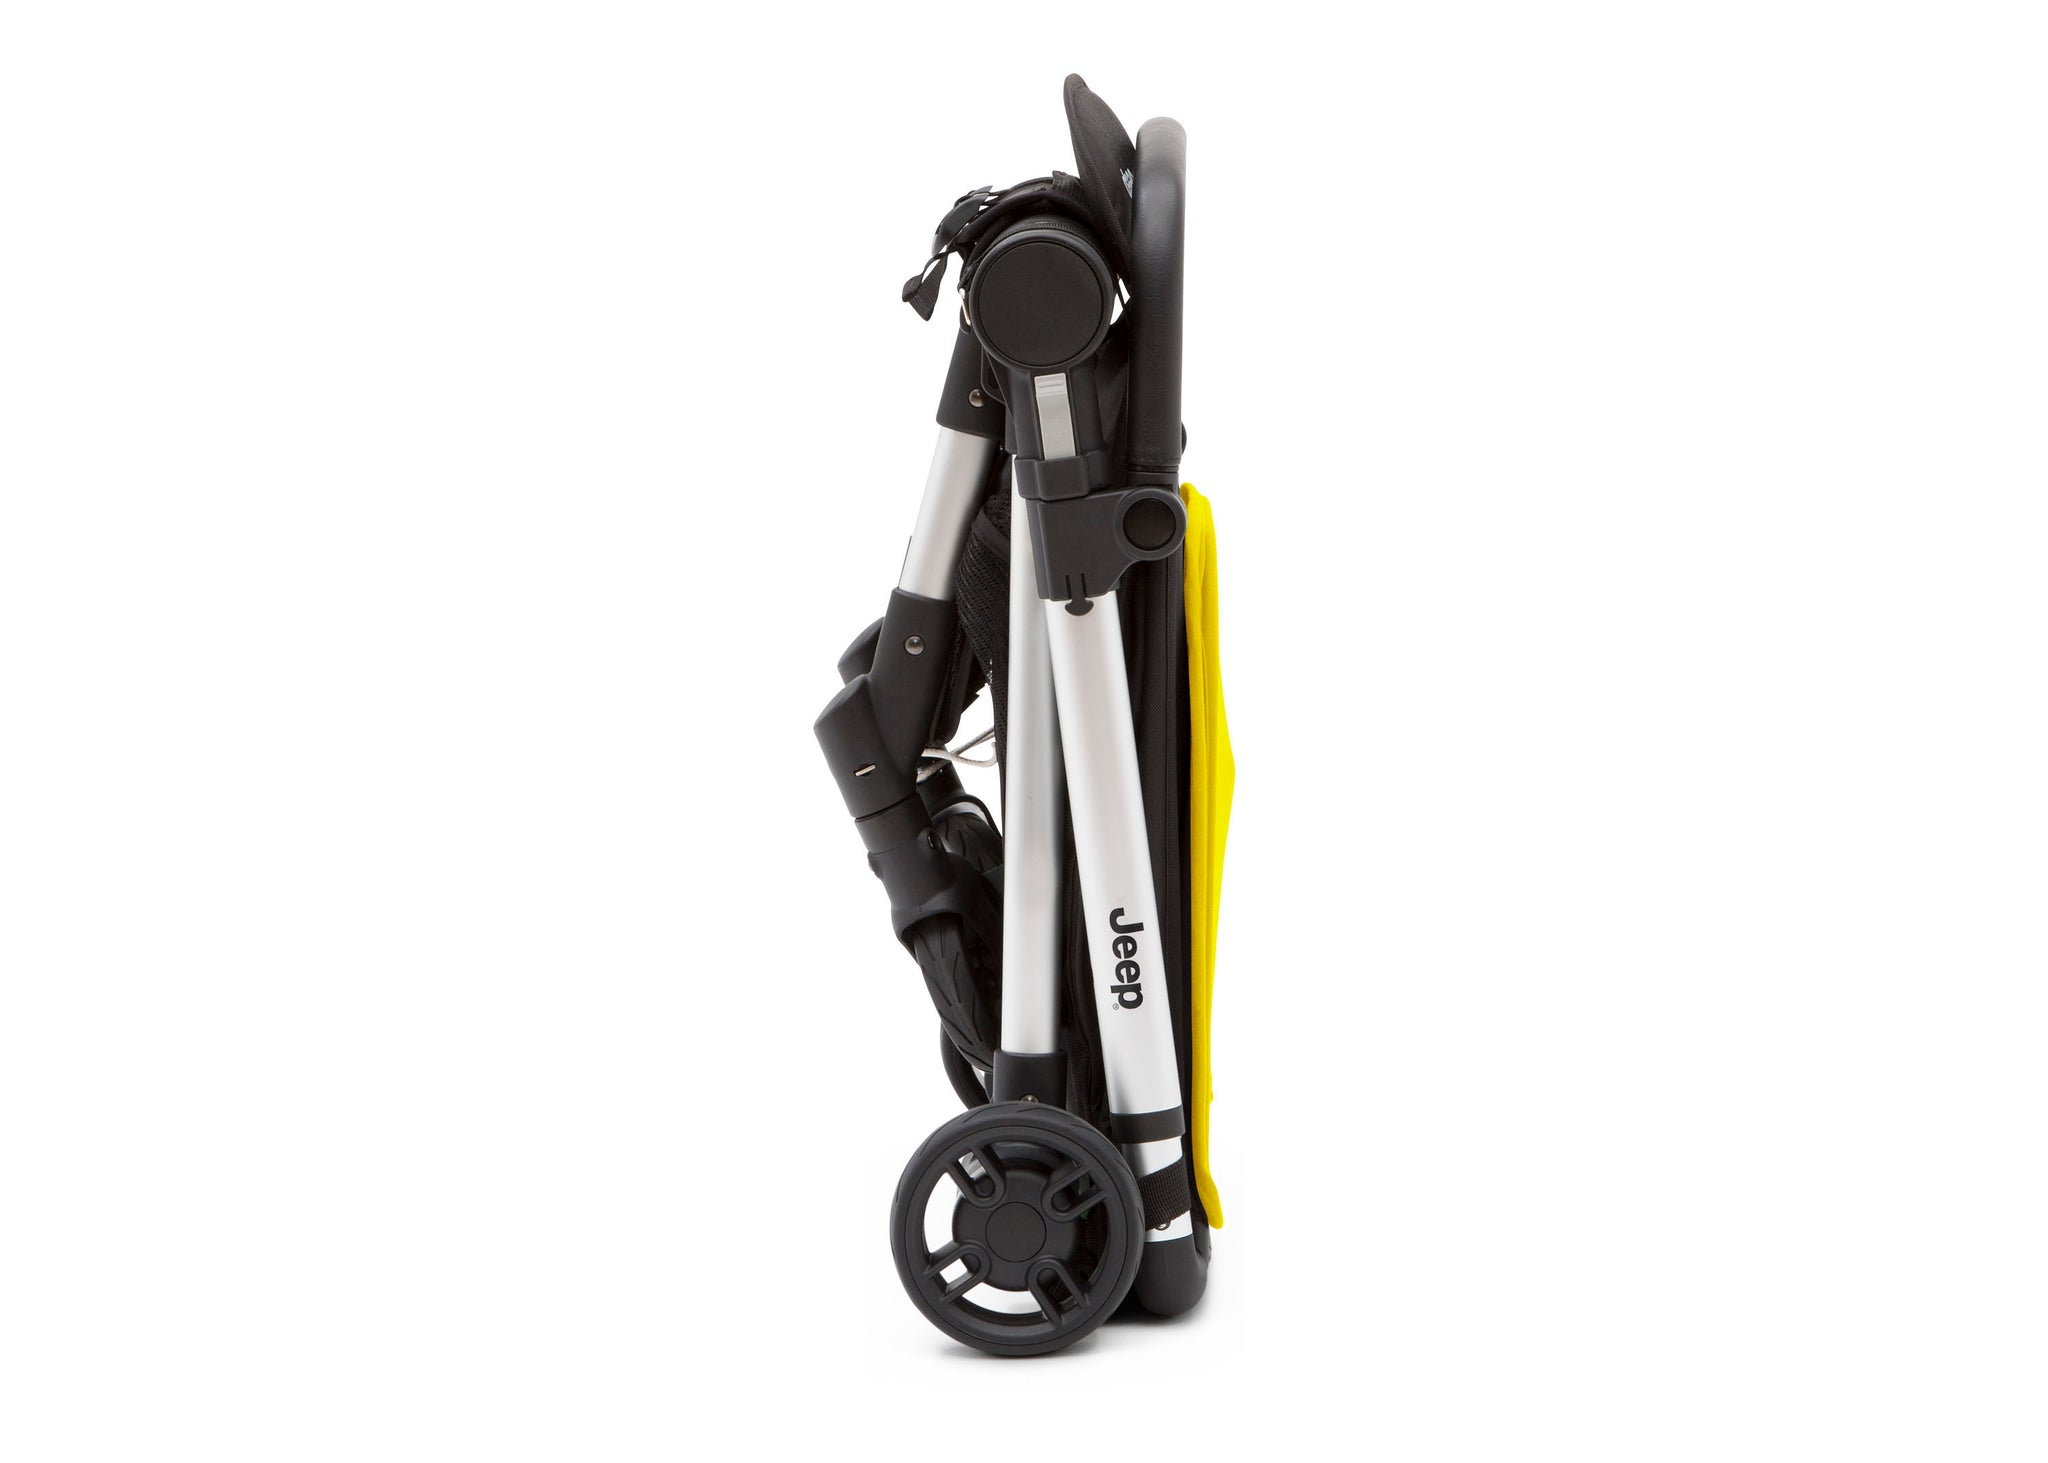 Jeep Yellow (2121) Arrow Travel Stroller, Folded View